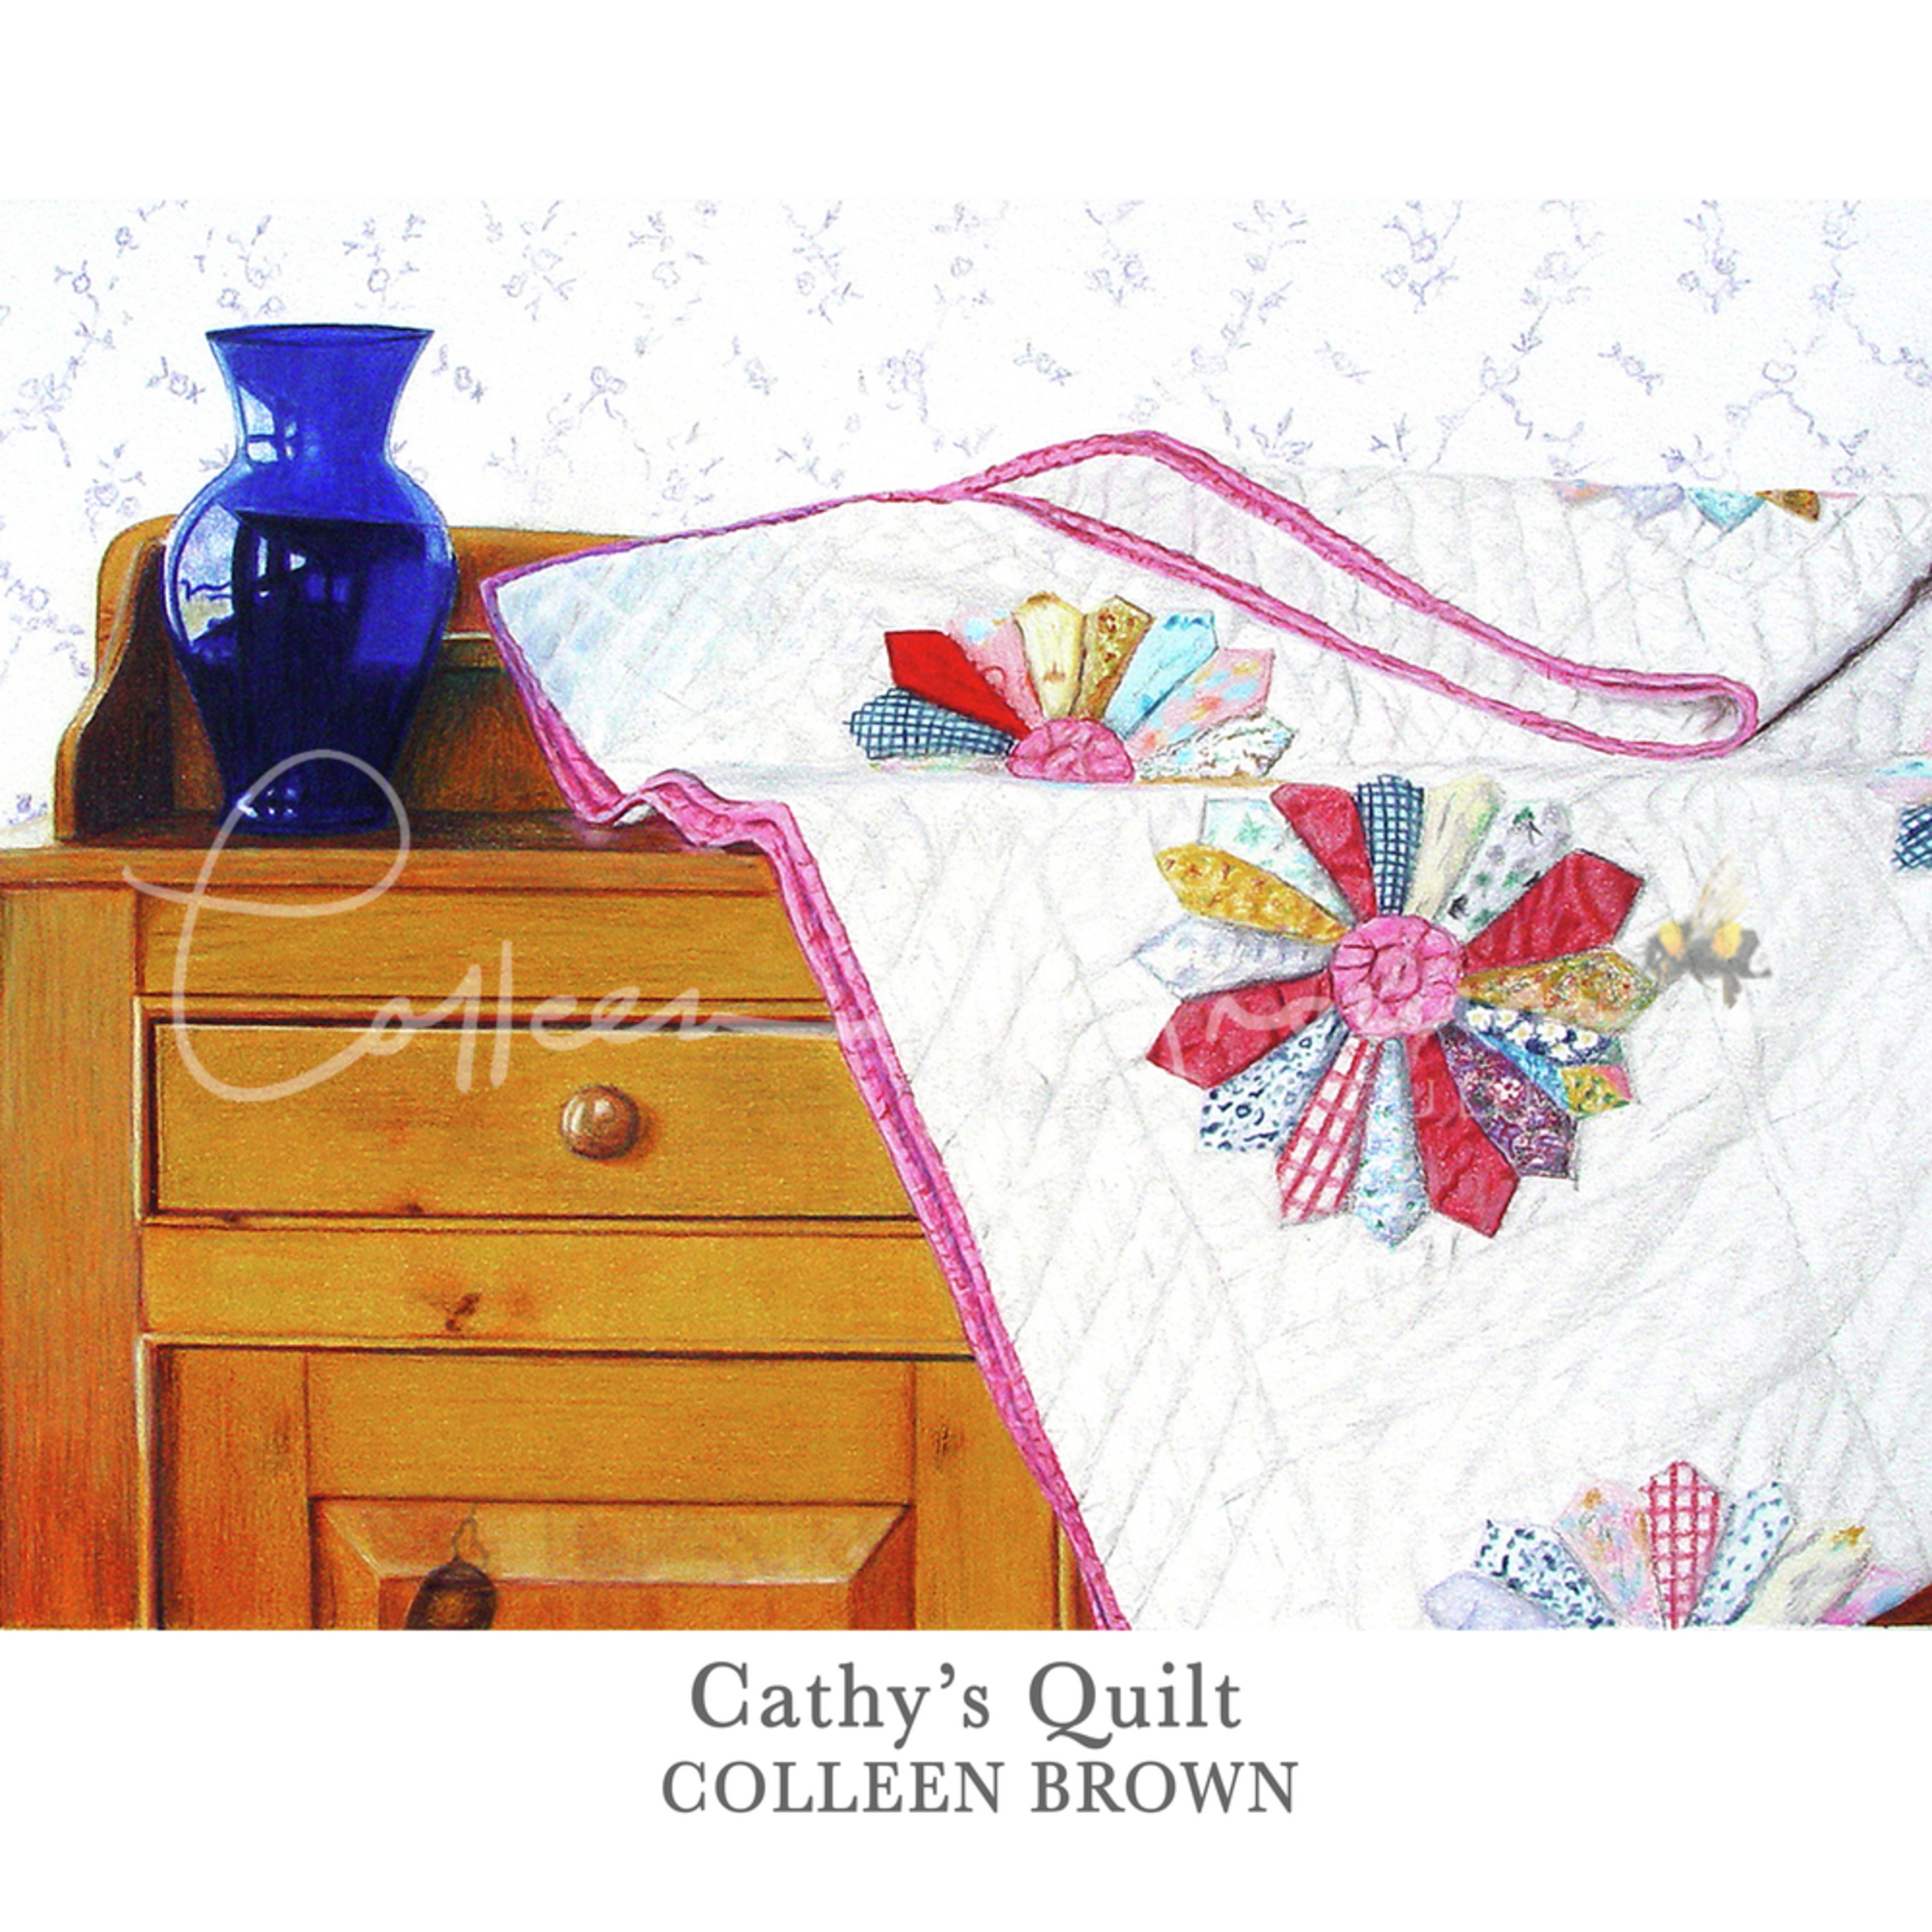 Cathysquilt colleenbrown text xpa5jf